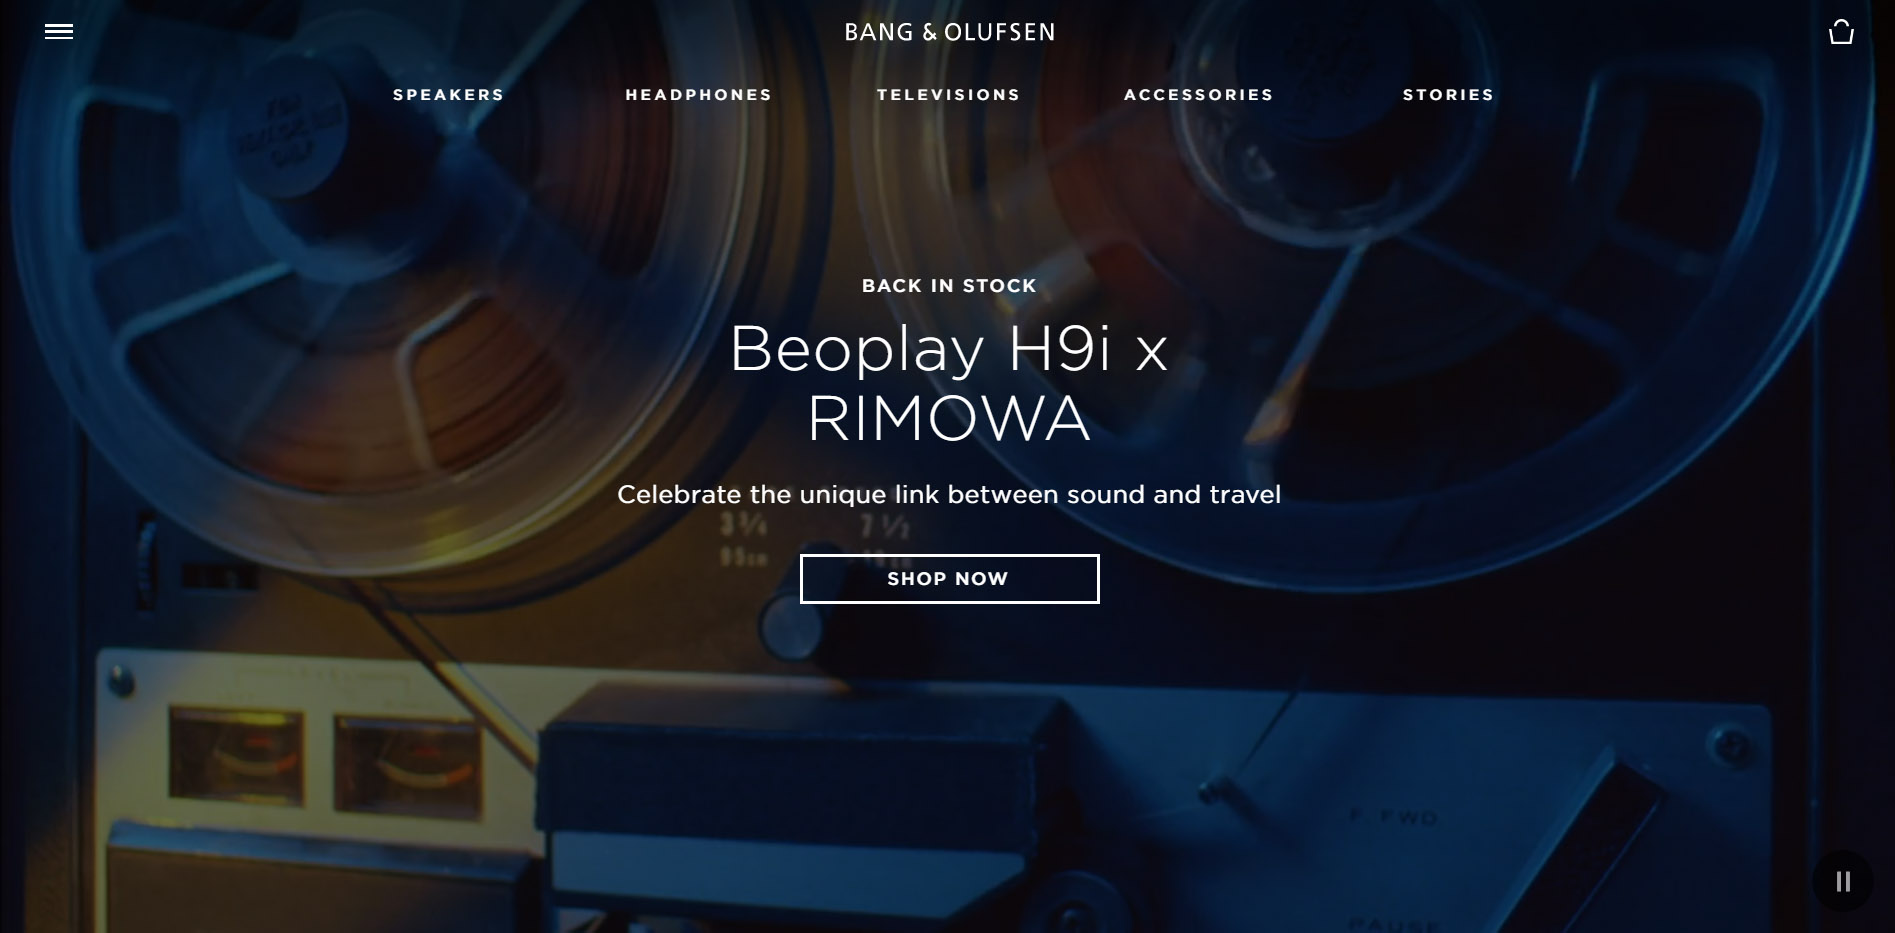 A Section of the 'beoplay' Website